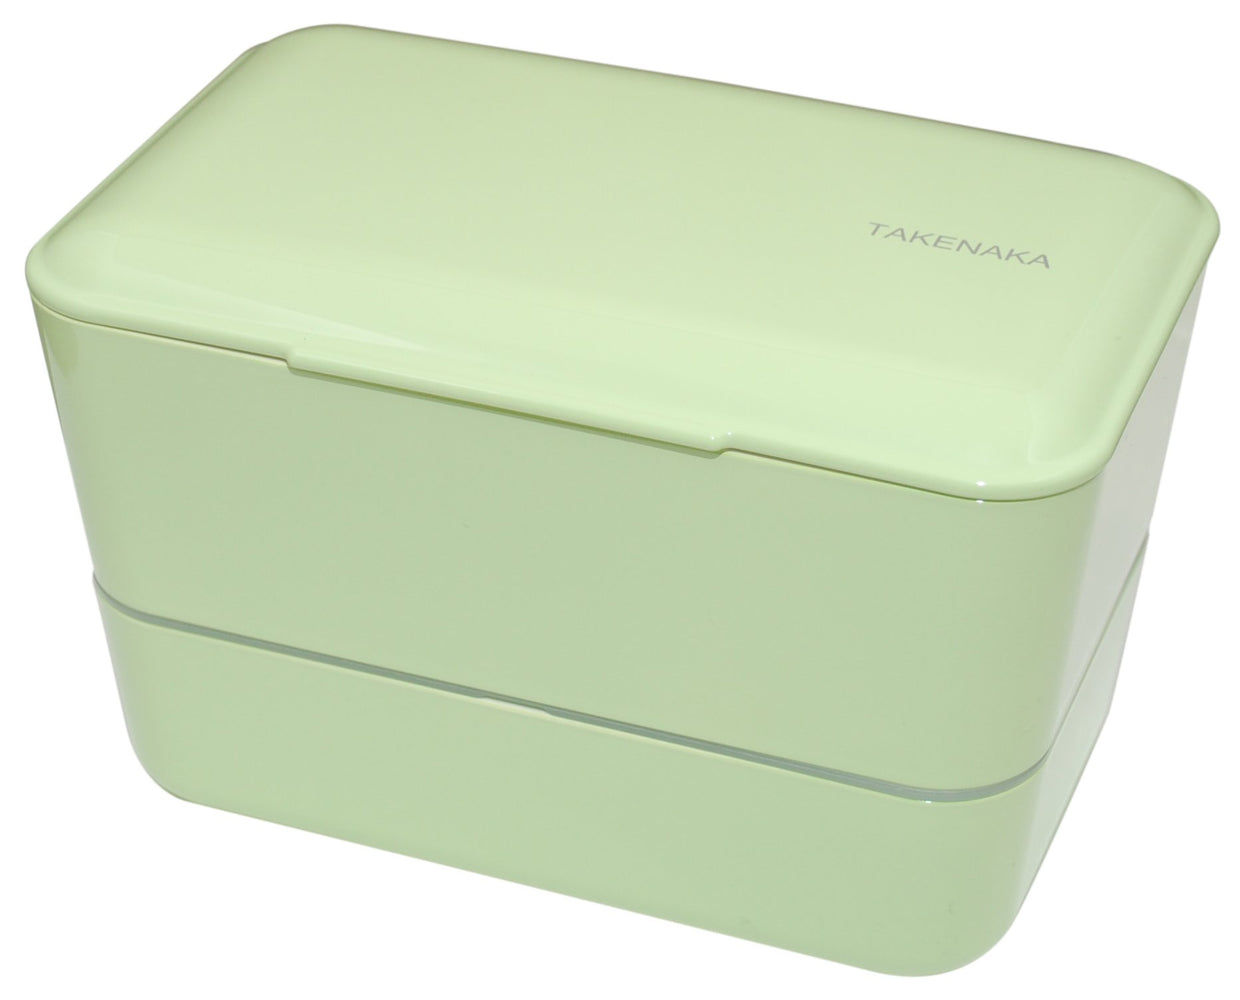 Expanded Double Bento Box | Pistachio Green by Takenaka - Bento&con the Bento Boxes specialist from Kyoto